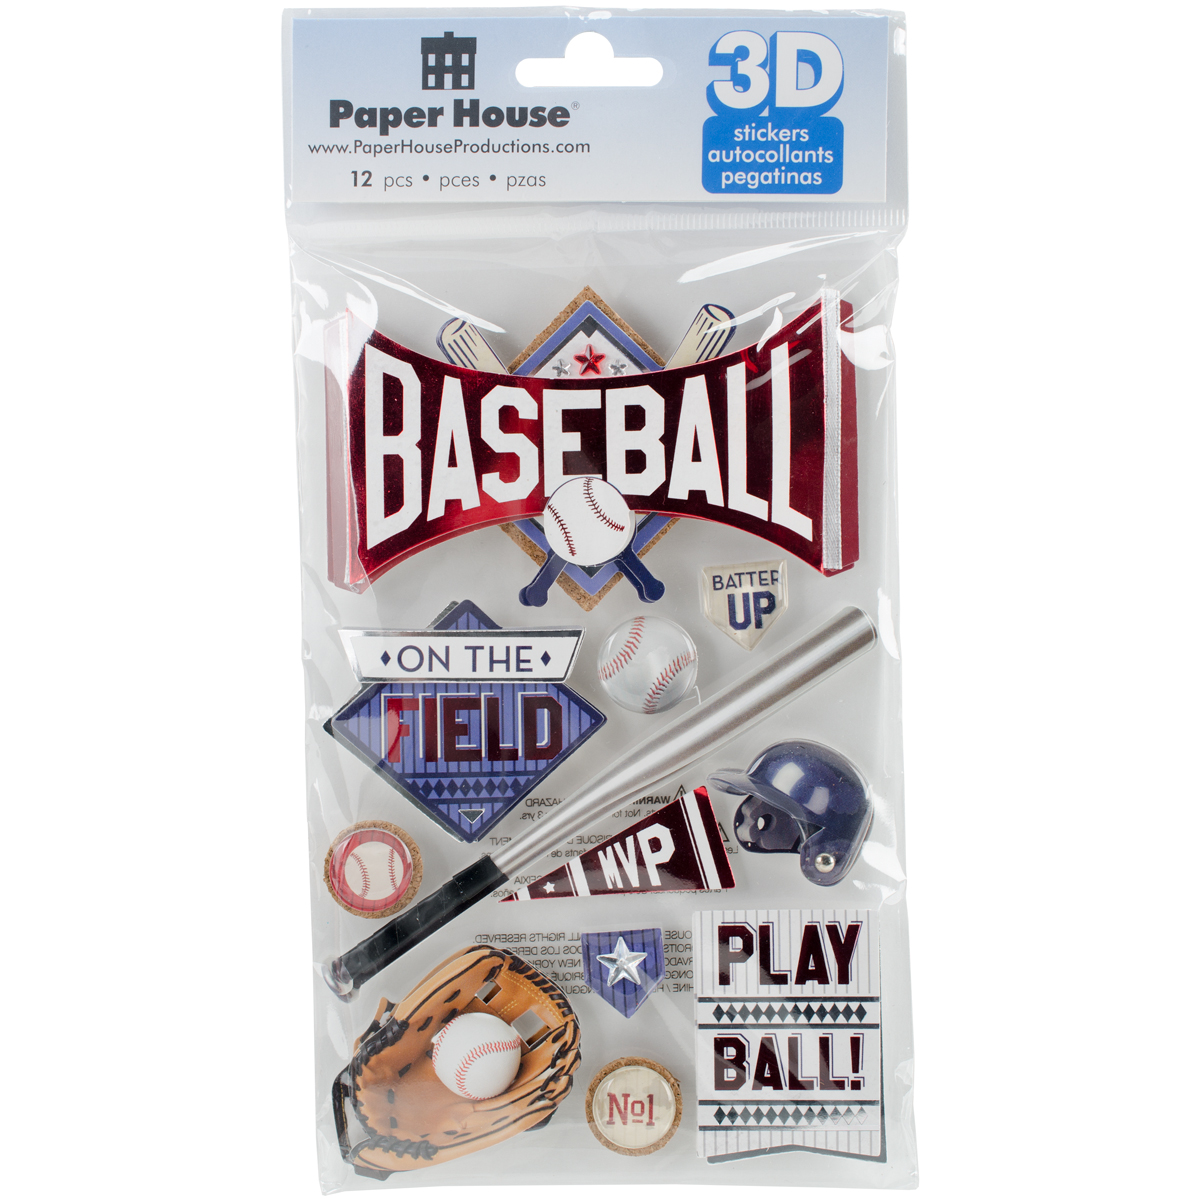 Paper House 3D Stickers 4.5X7.5 -Baseball Batter Up